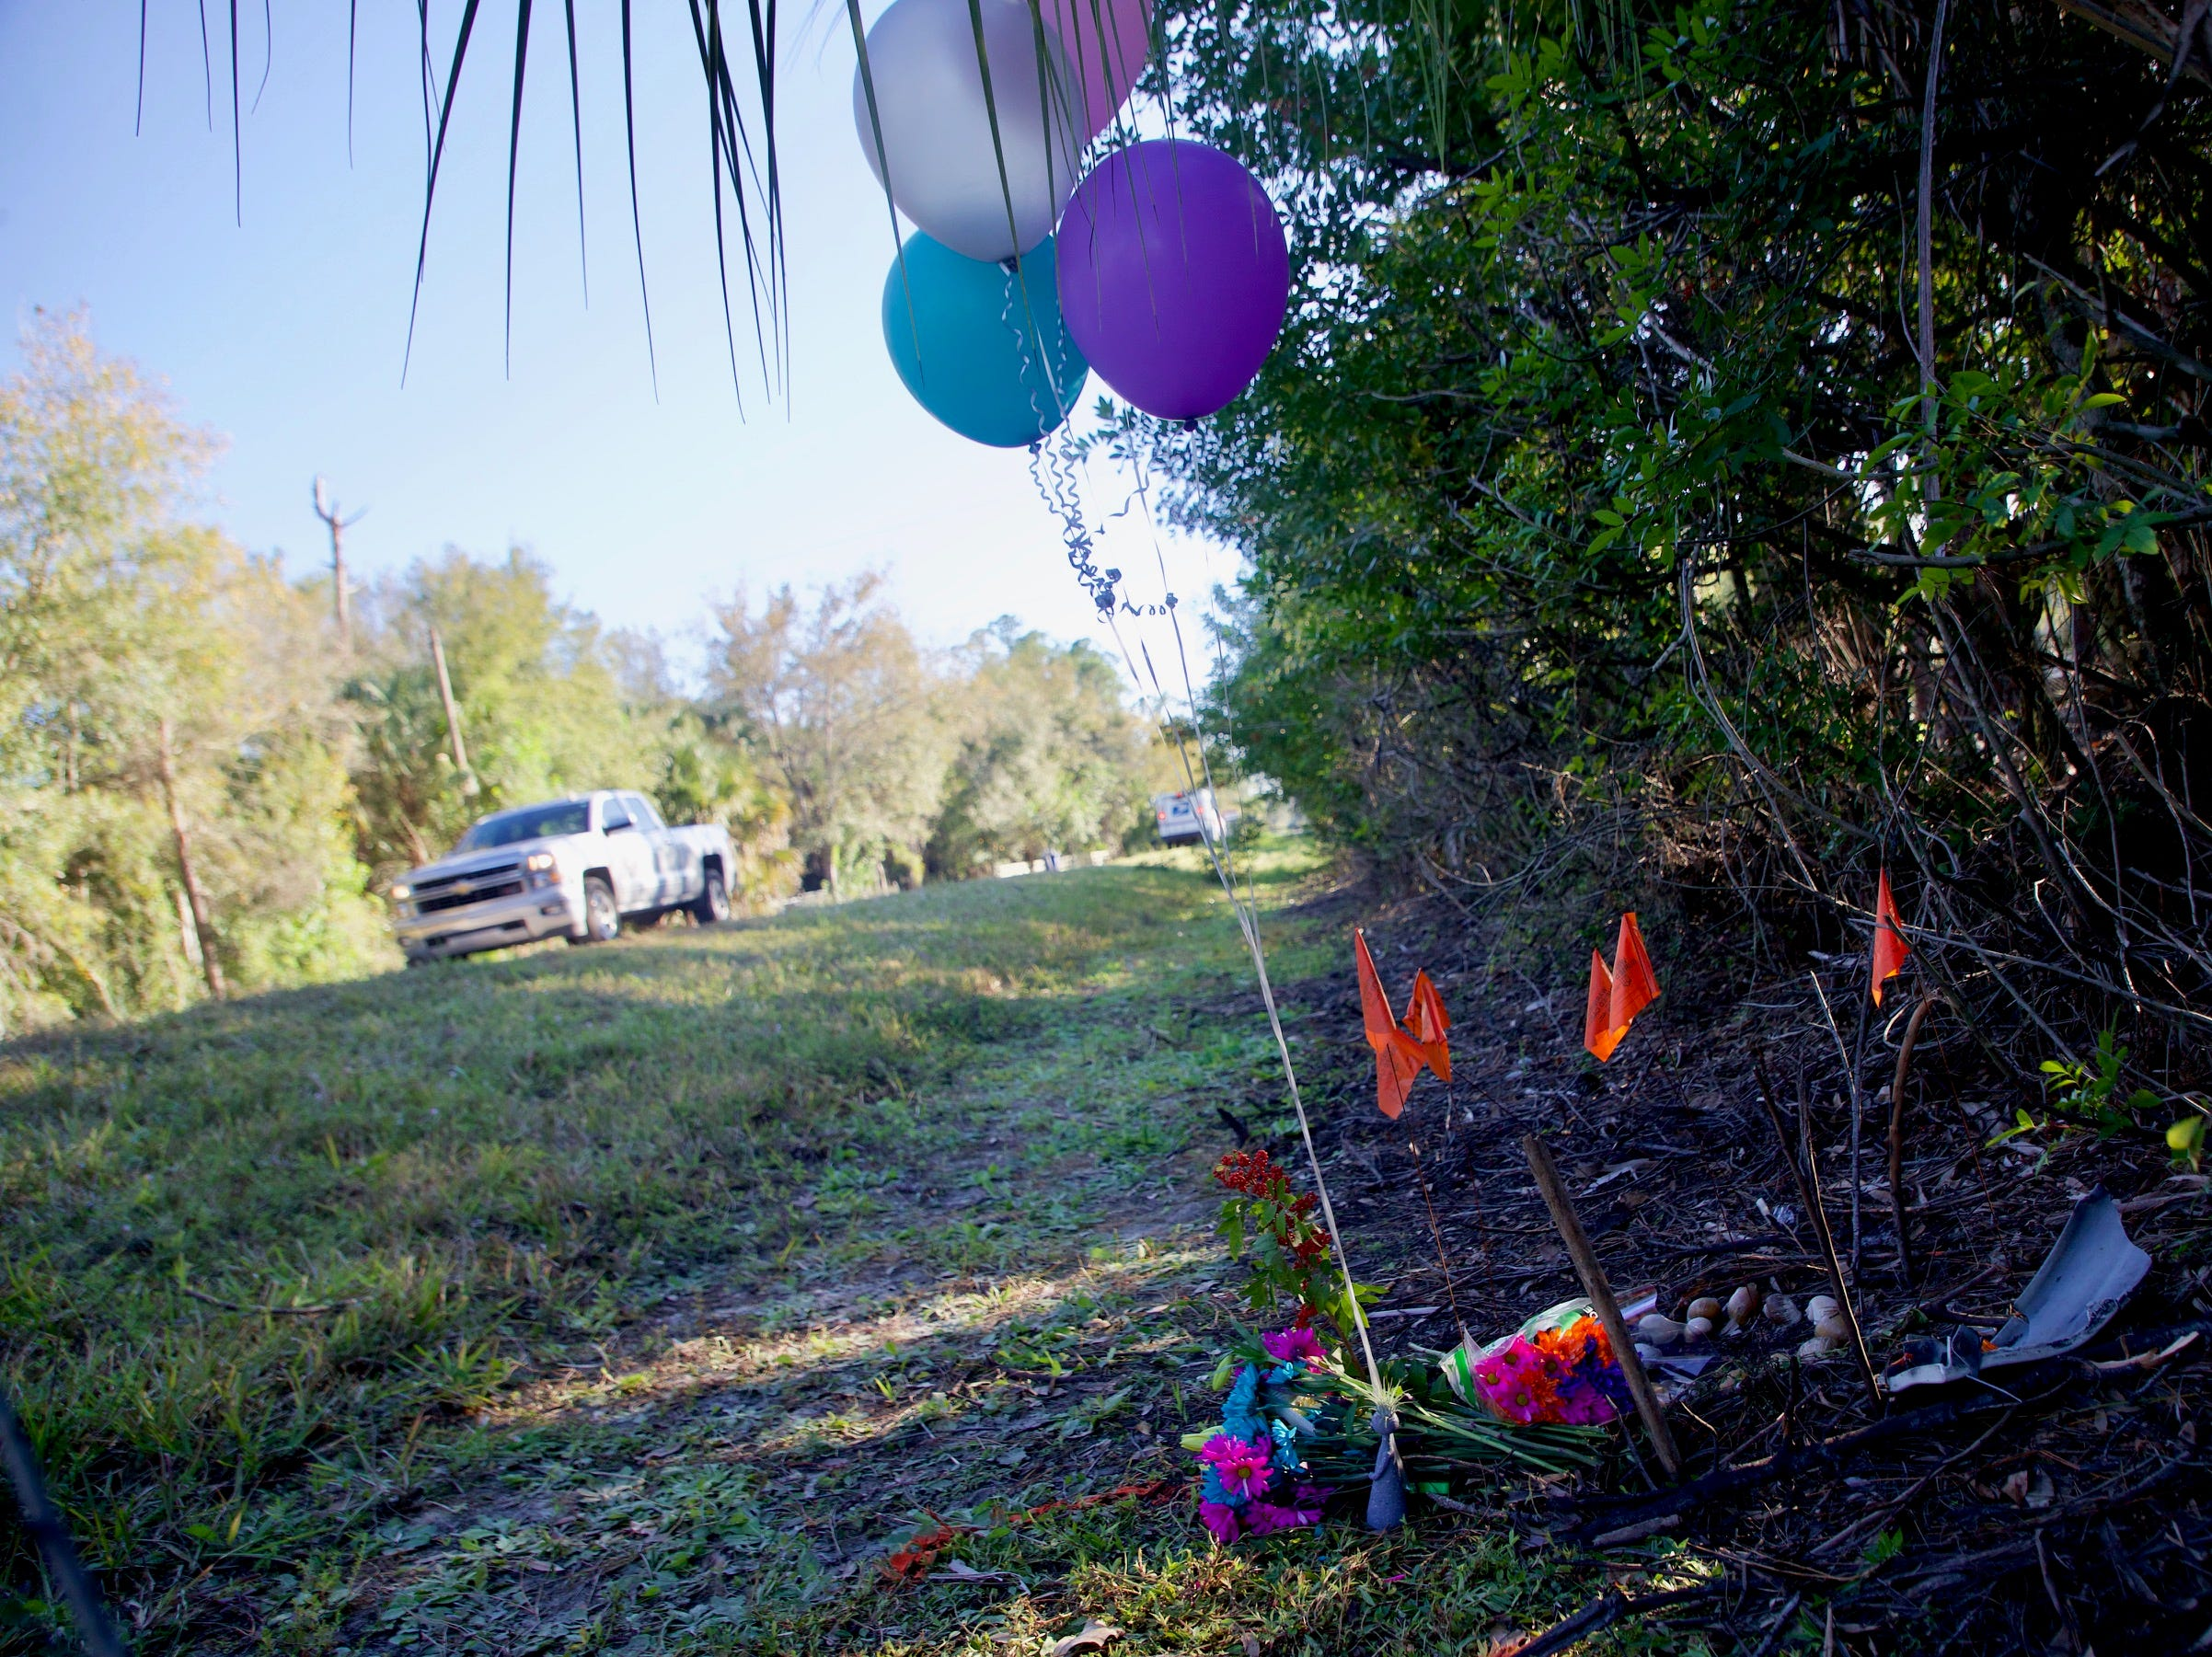 A memorial for 12 year old Alana Marie Tamplin has been set up on Durrance Road in North Fort where she was hit after dropping her sister off at a bus stop early Monday. She died at the hospital.